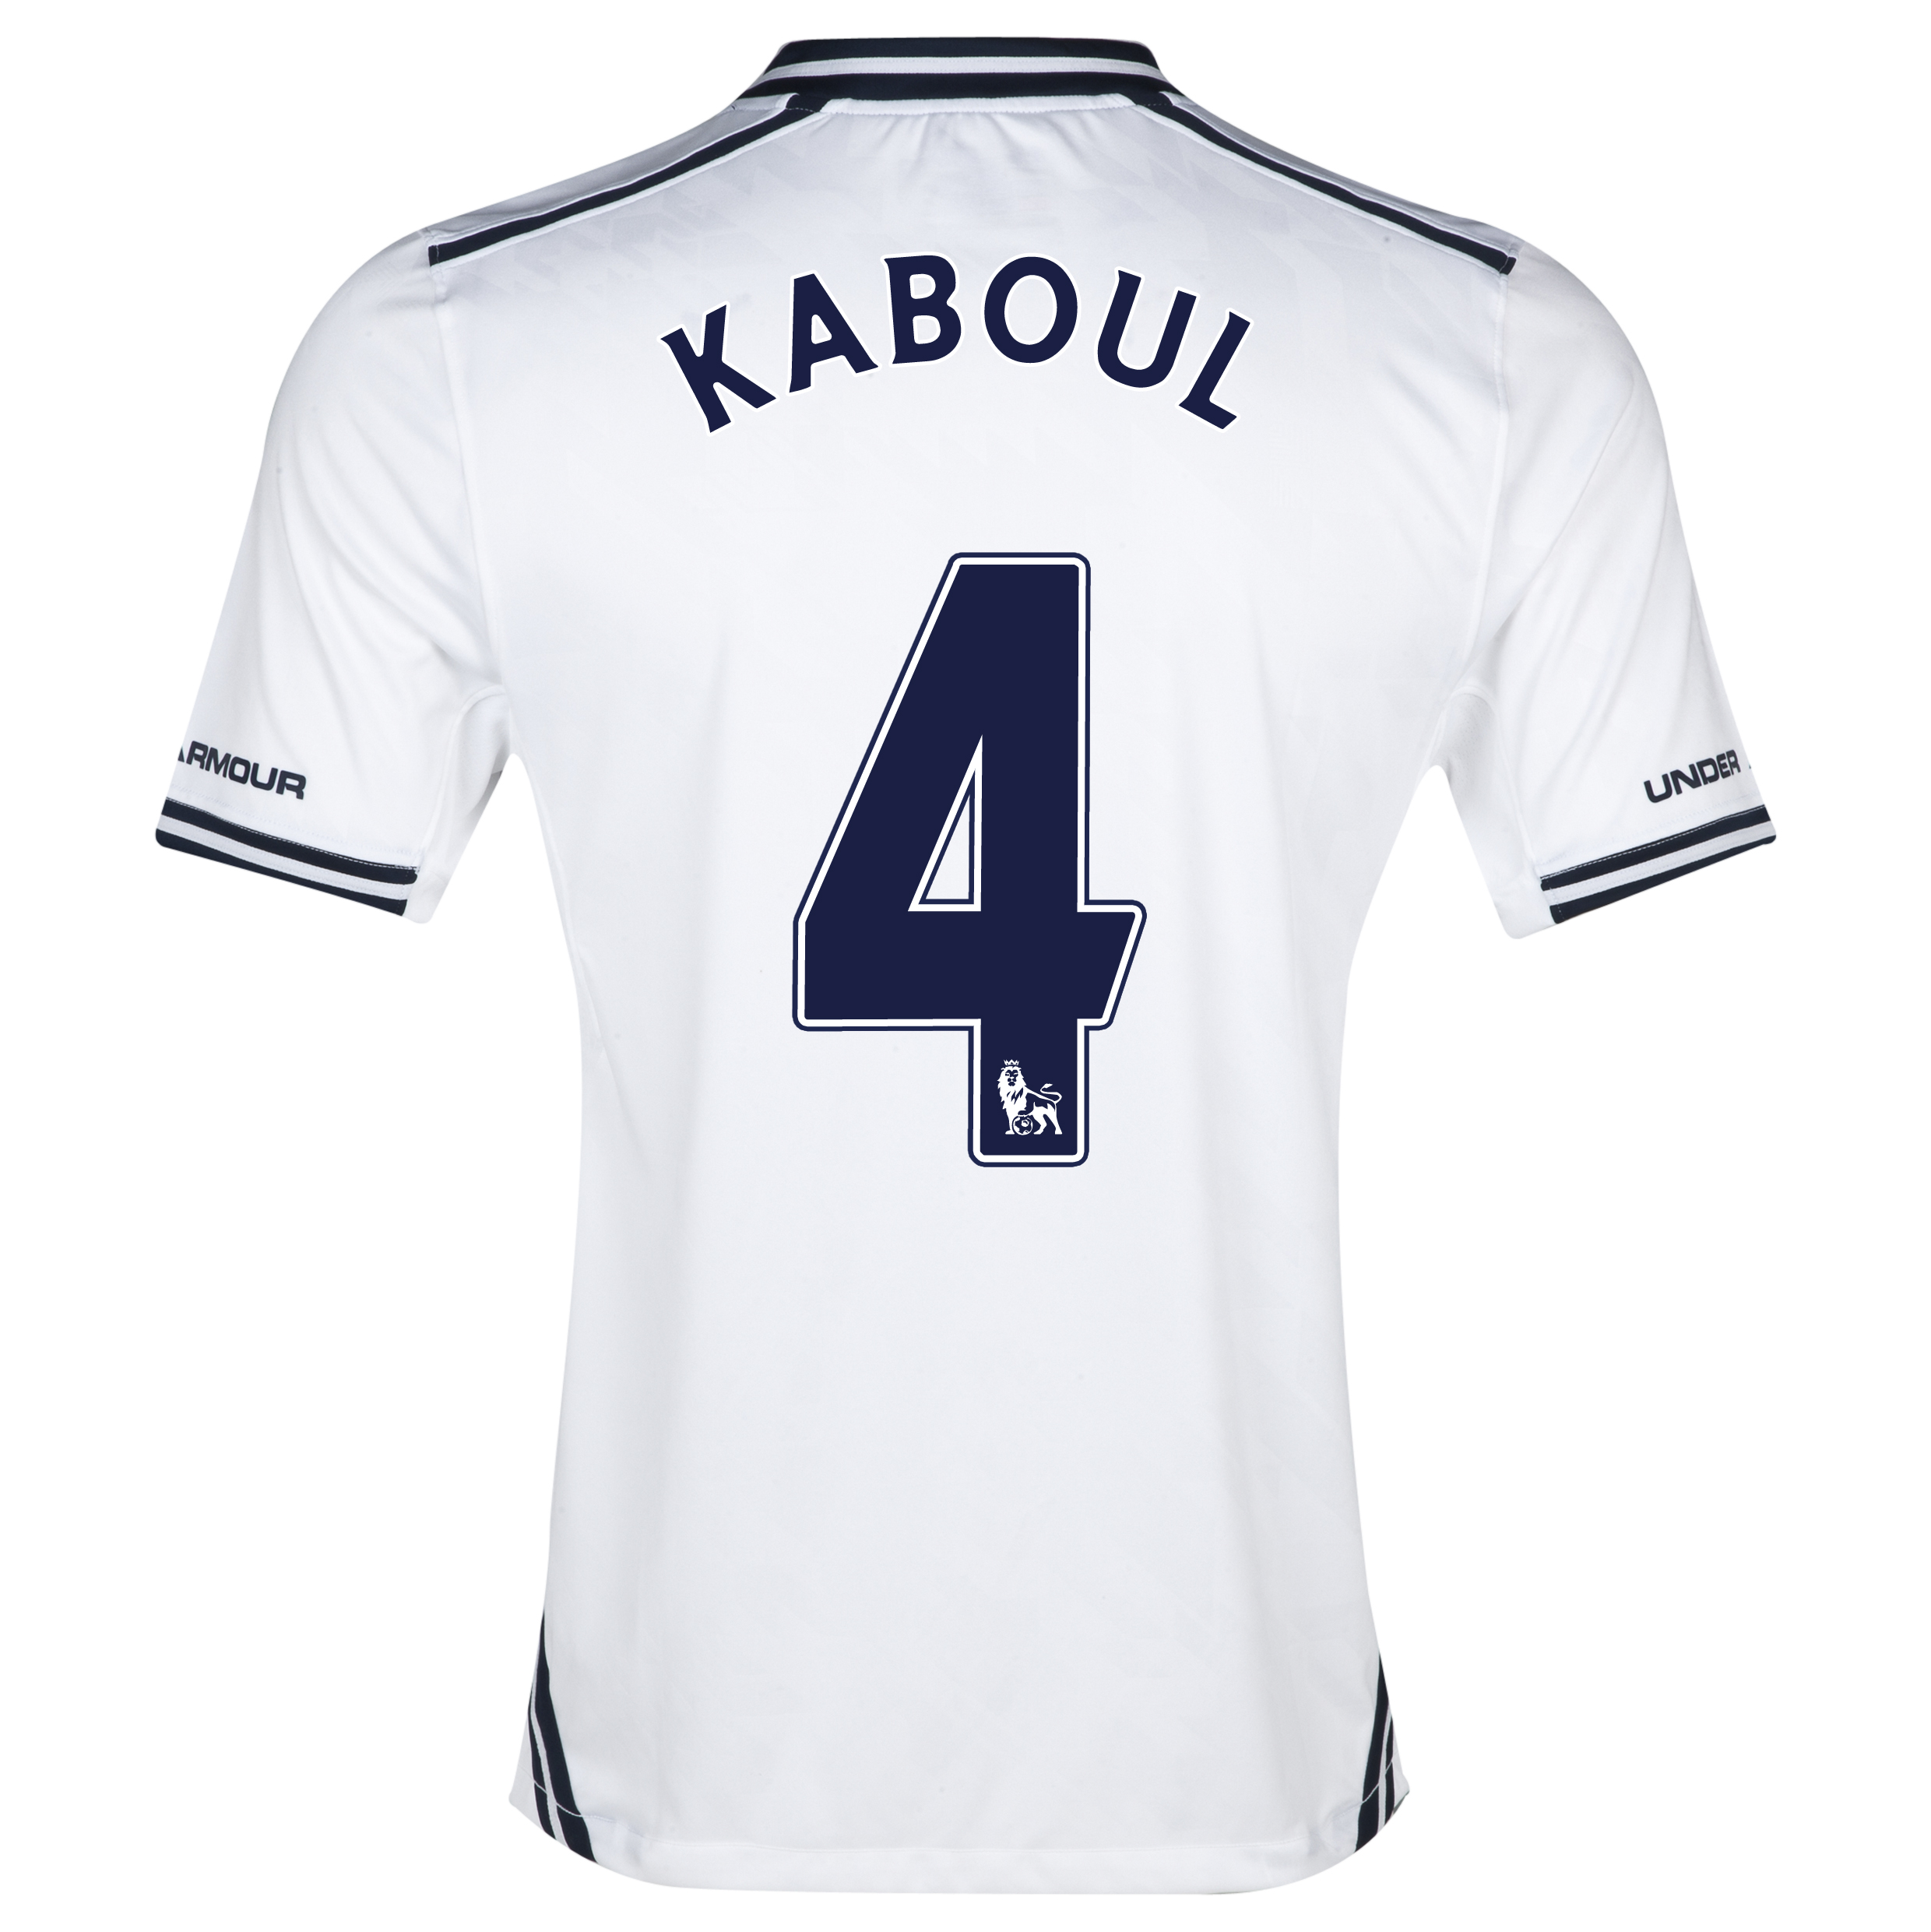 Tottenham Hotspur Home Shirt 2013/14 with Kaboul 4 printing